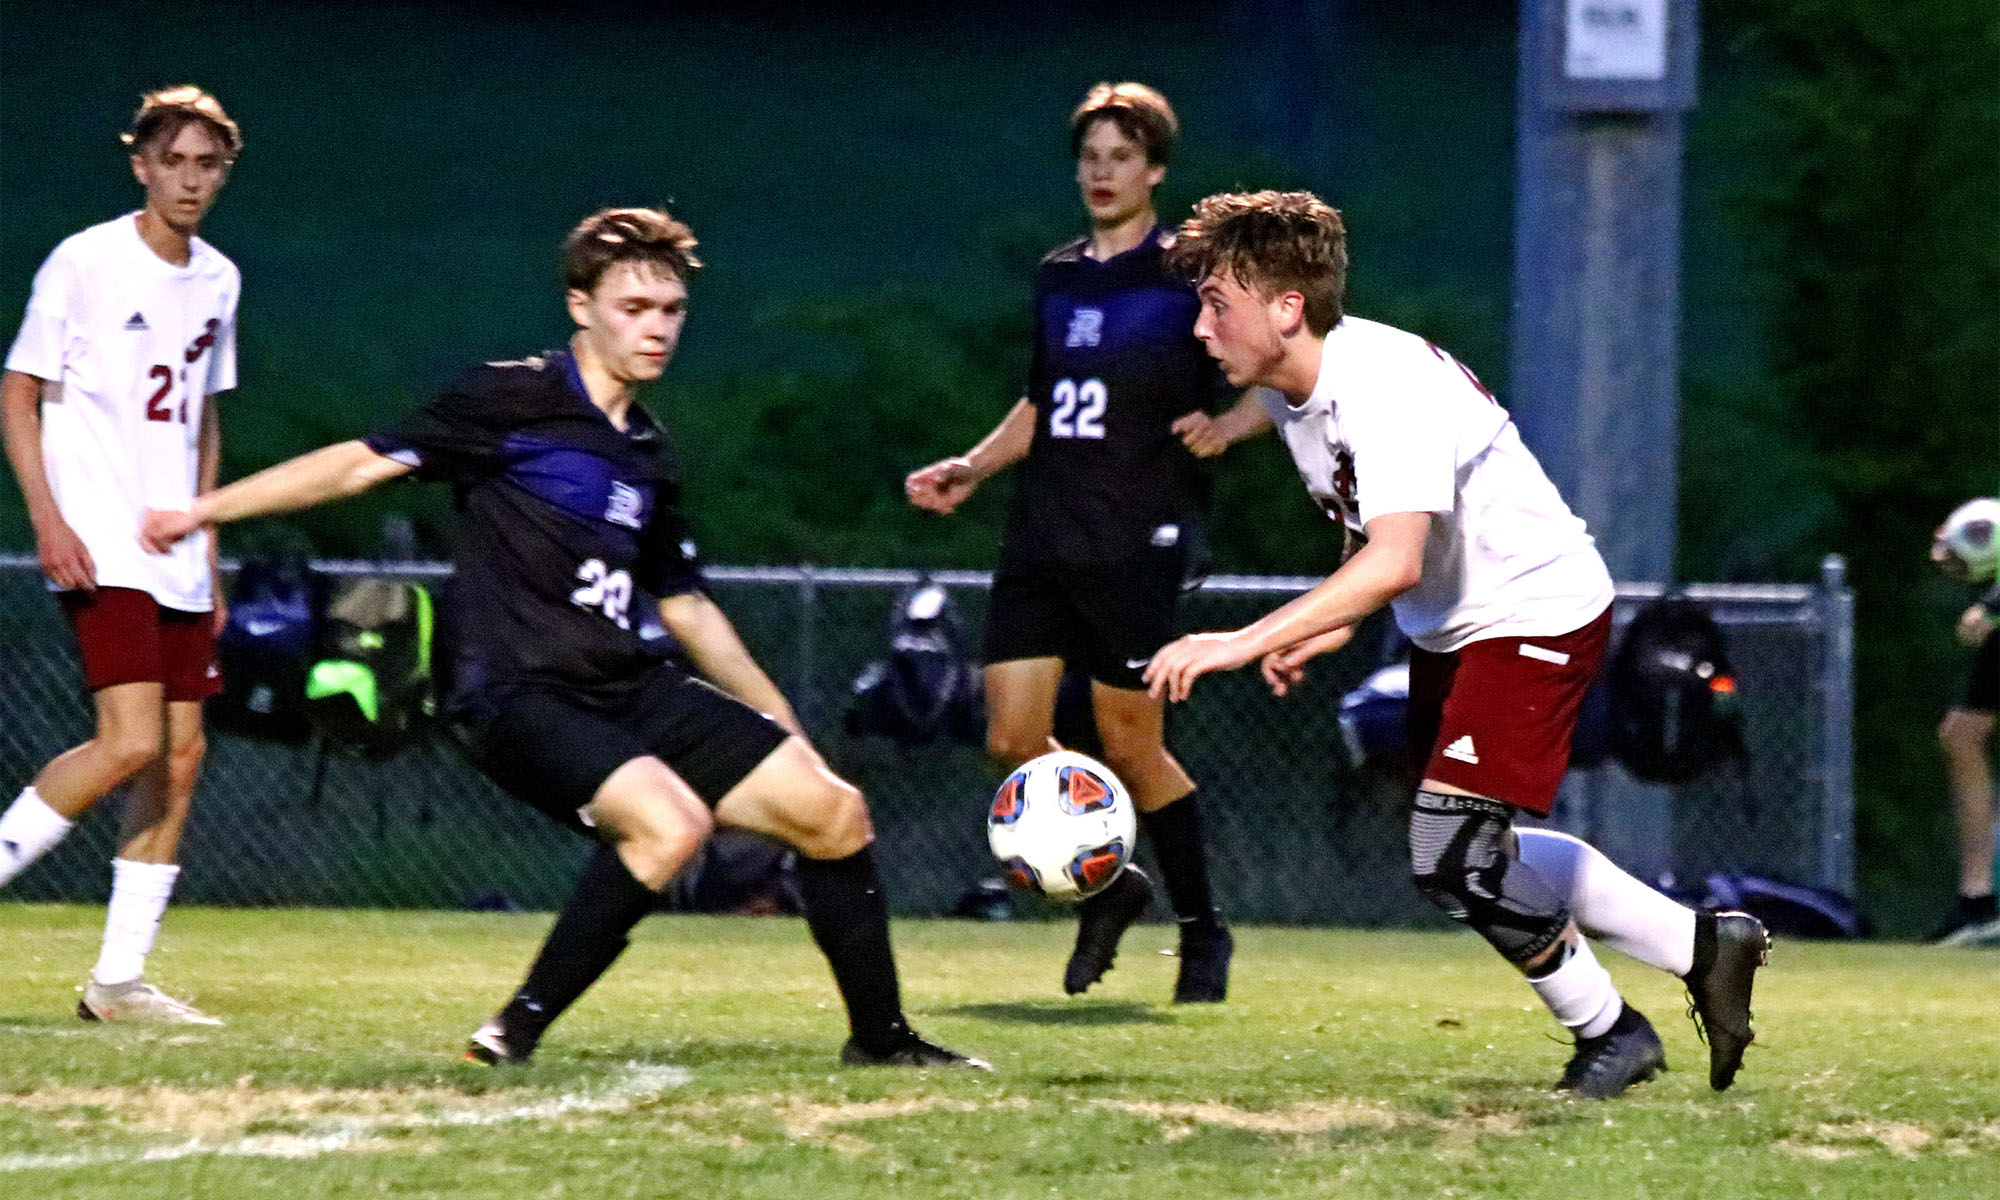 Hartselle soccer's season ends in second round loss to Randolph